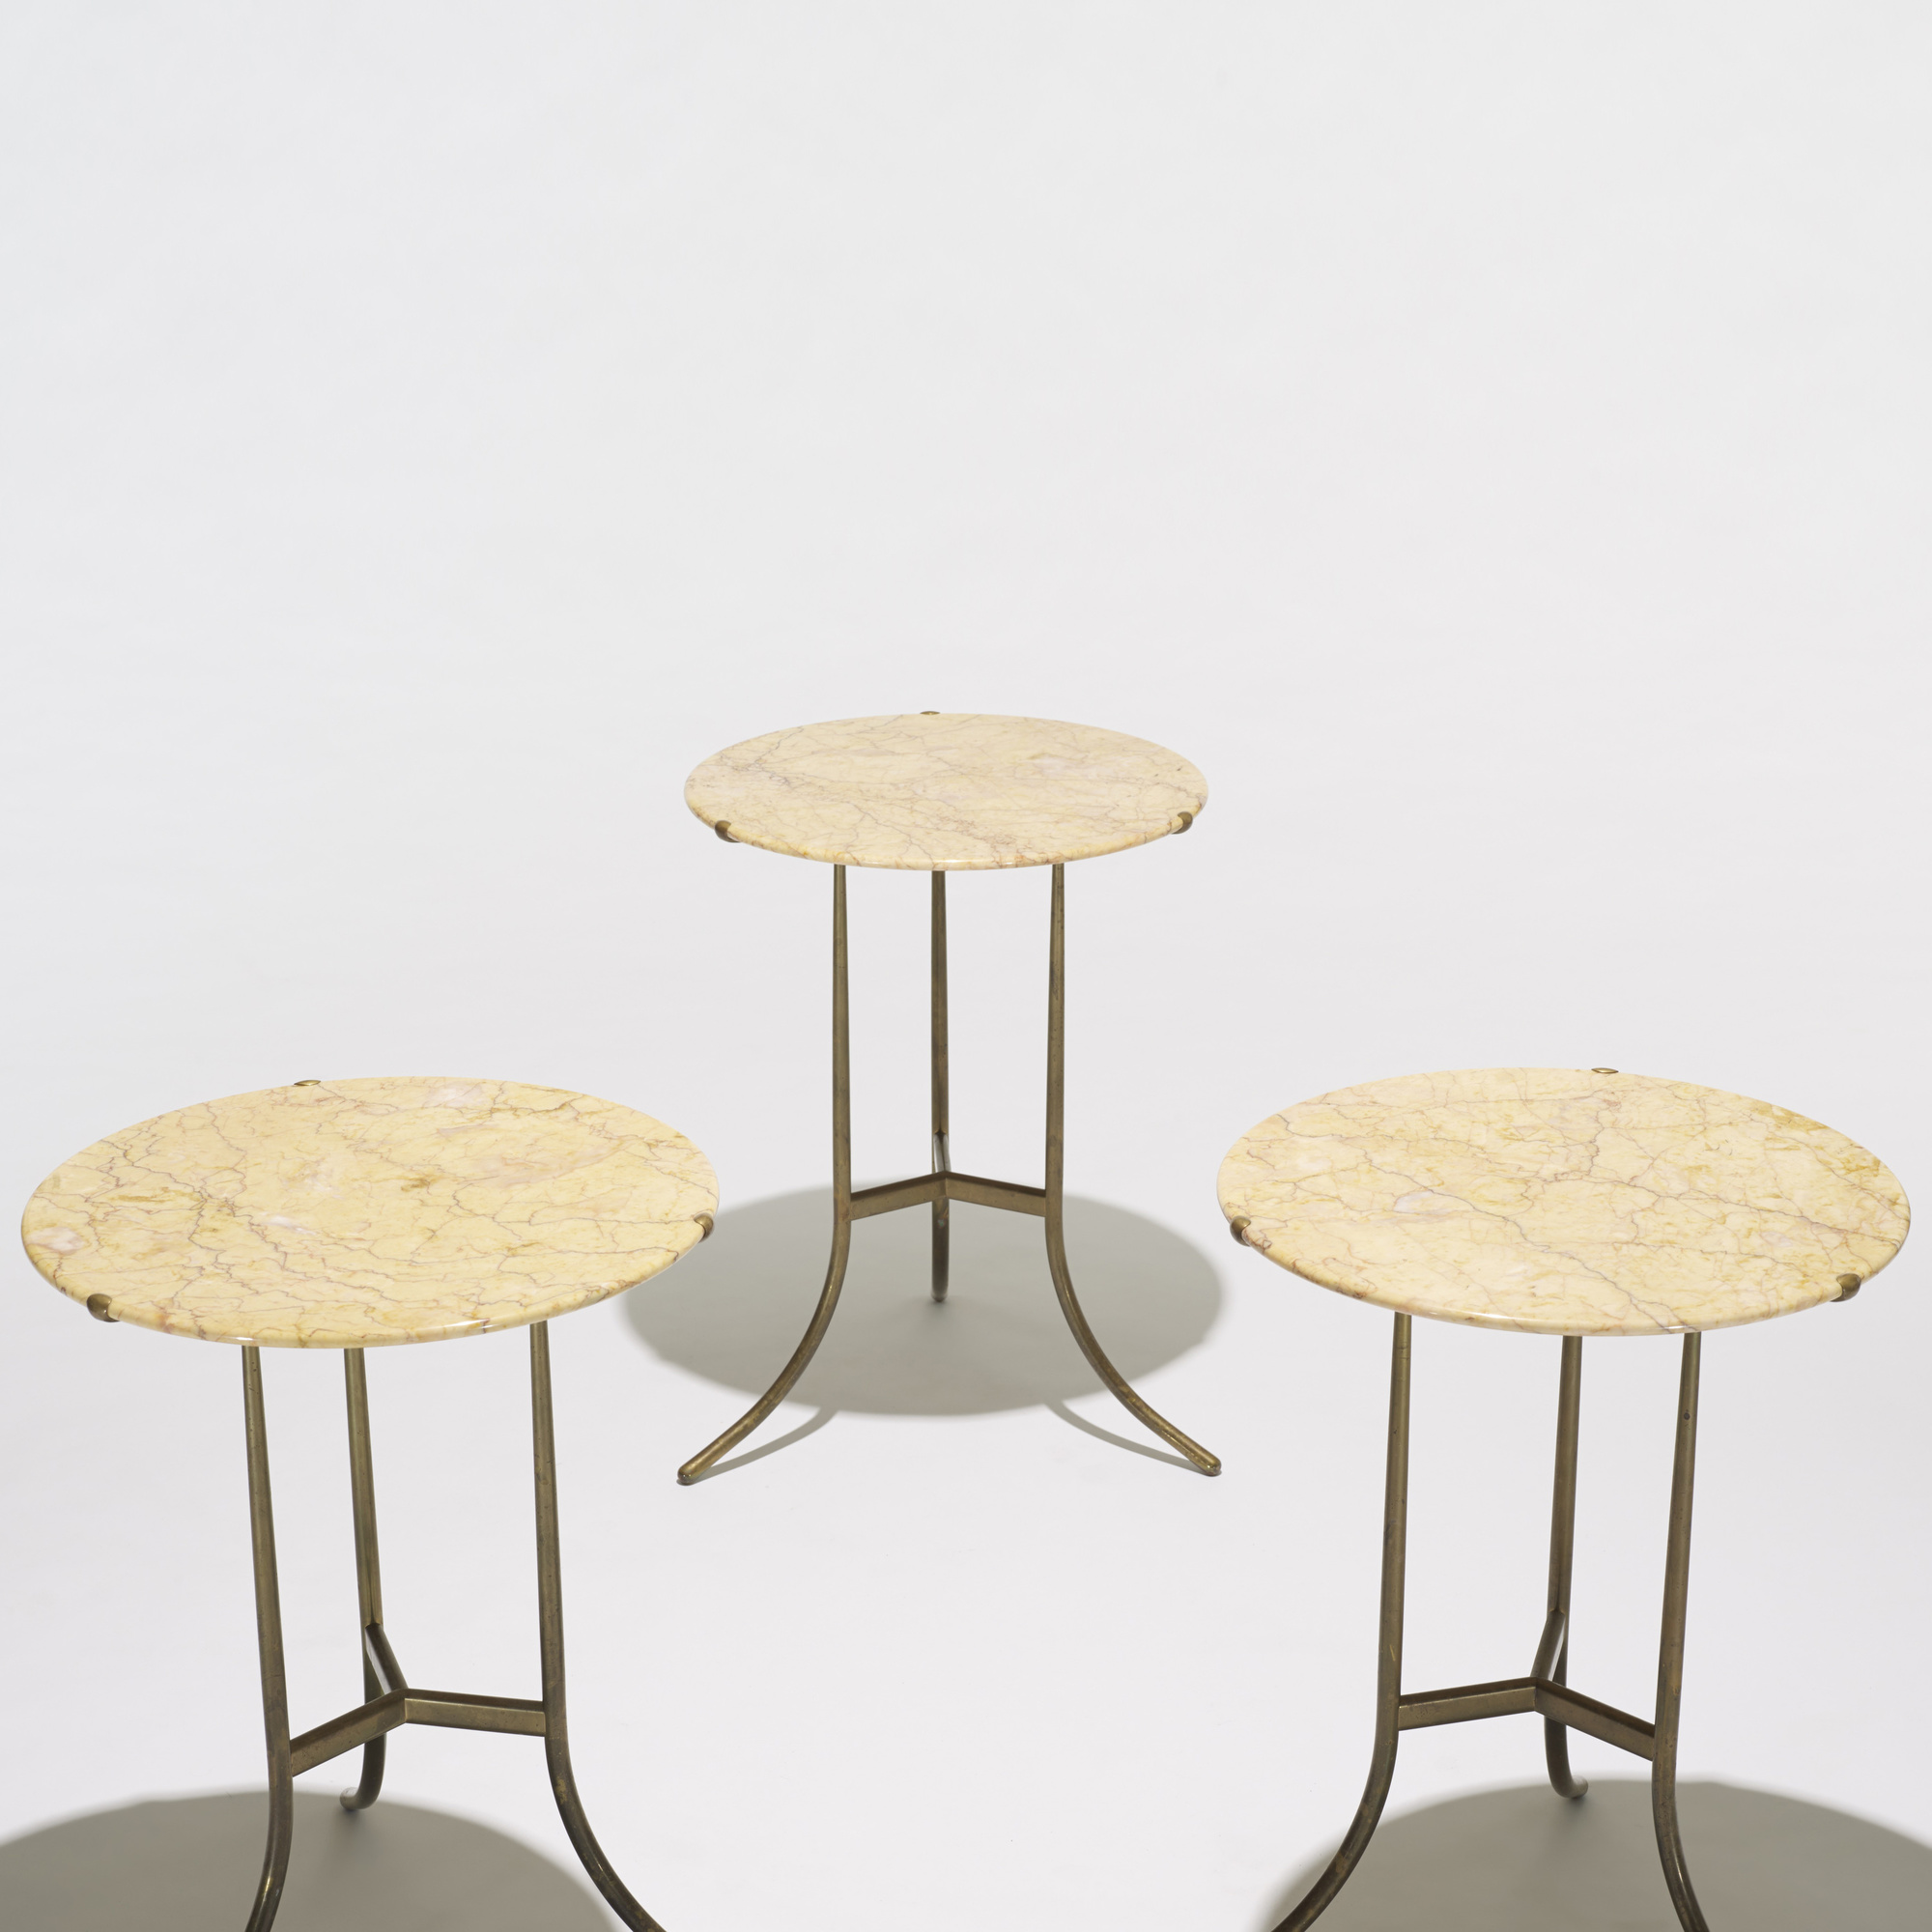 396: Cedric Hartman / occasional tables, set of three (2 of 4)